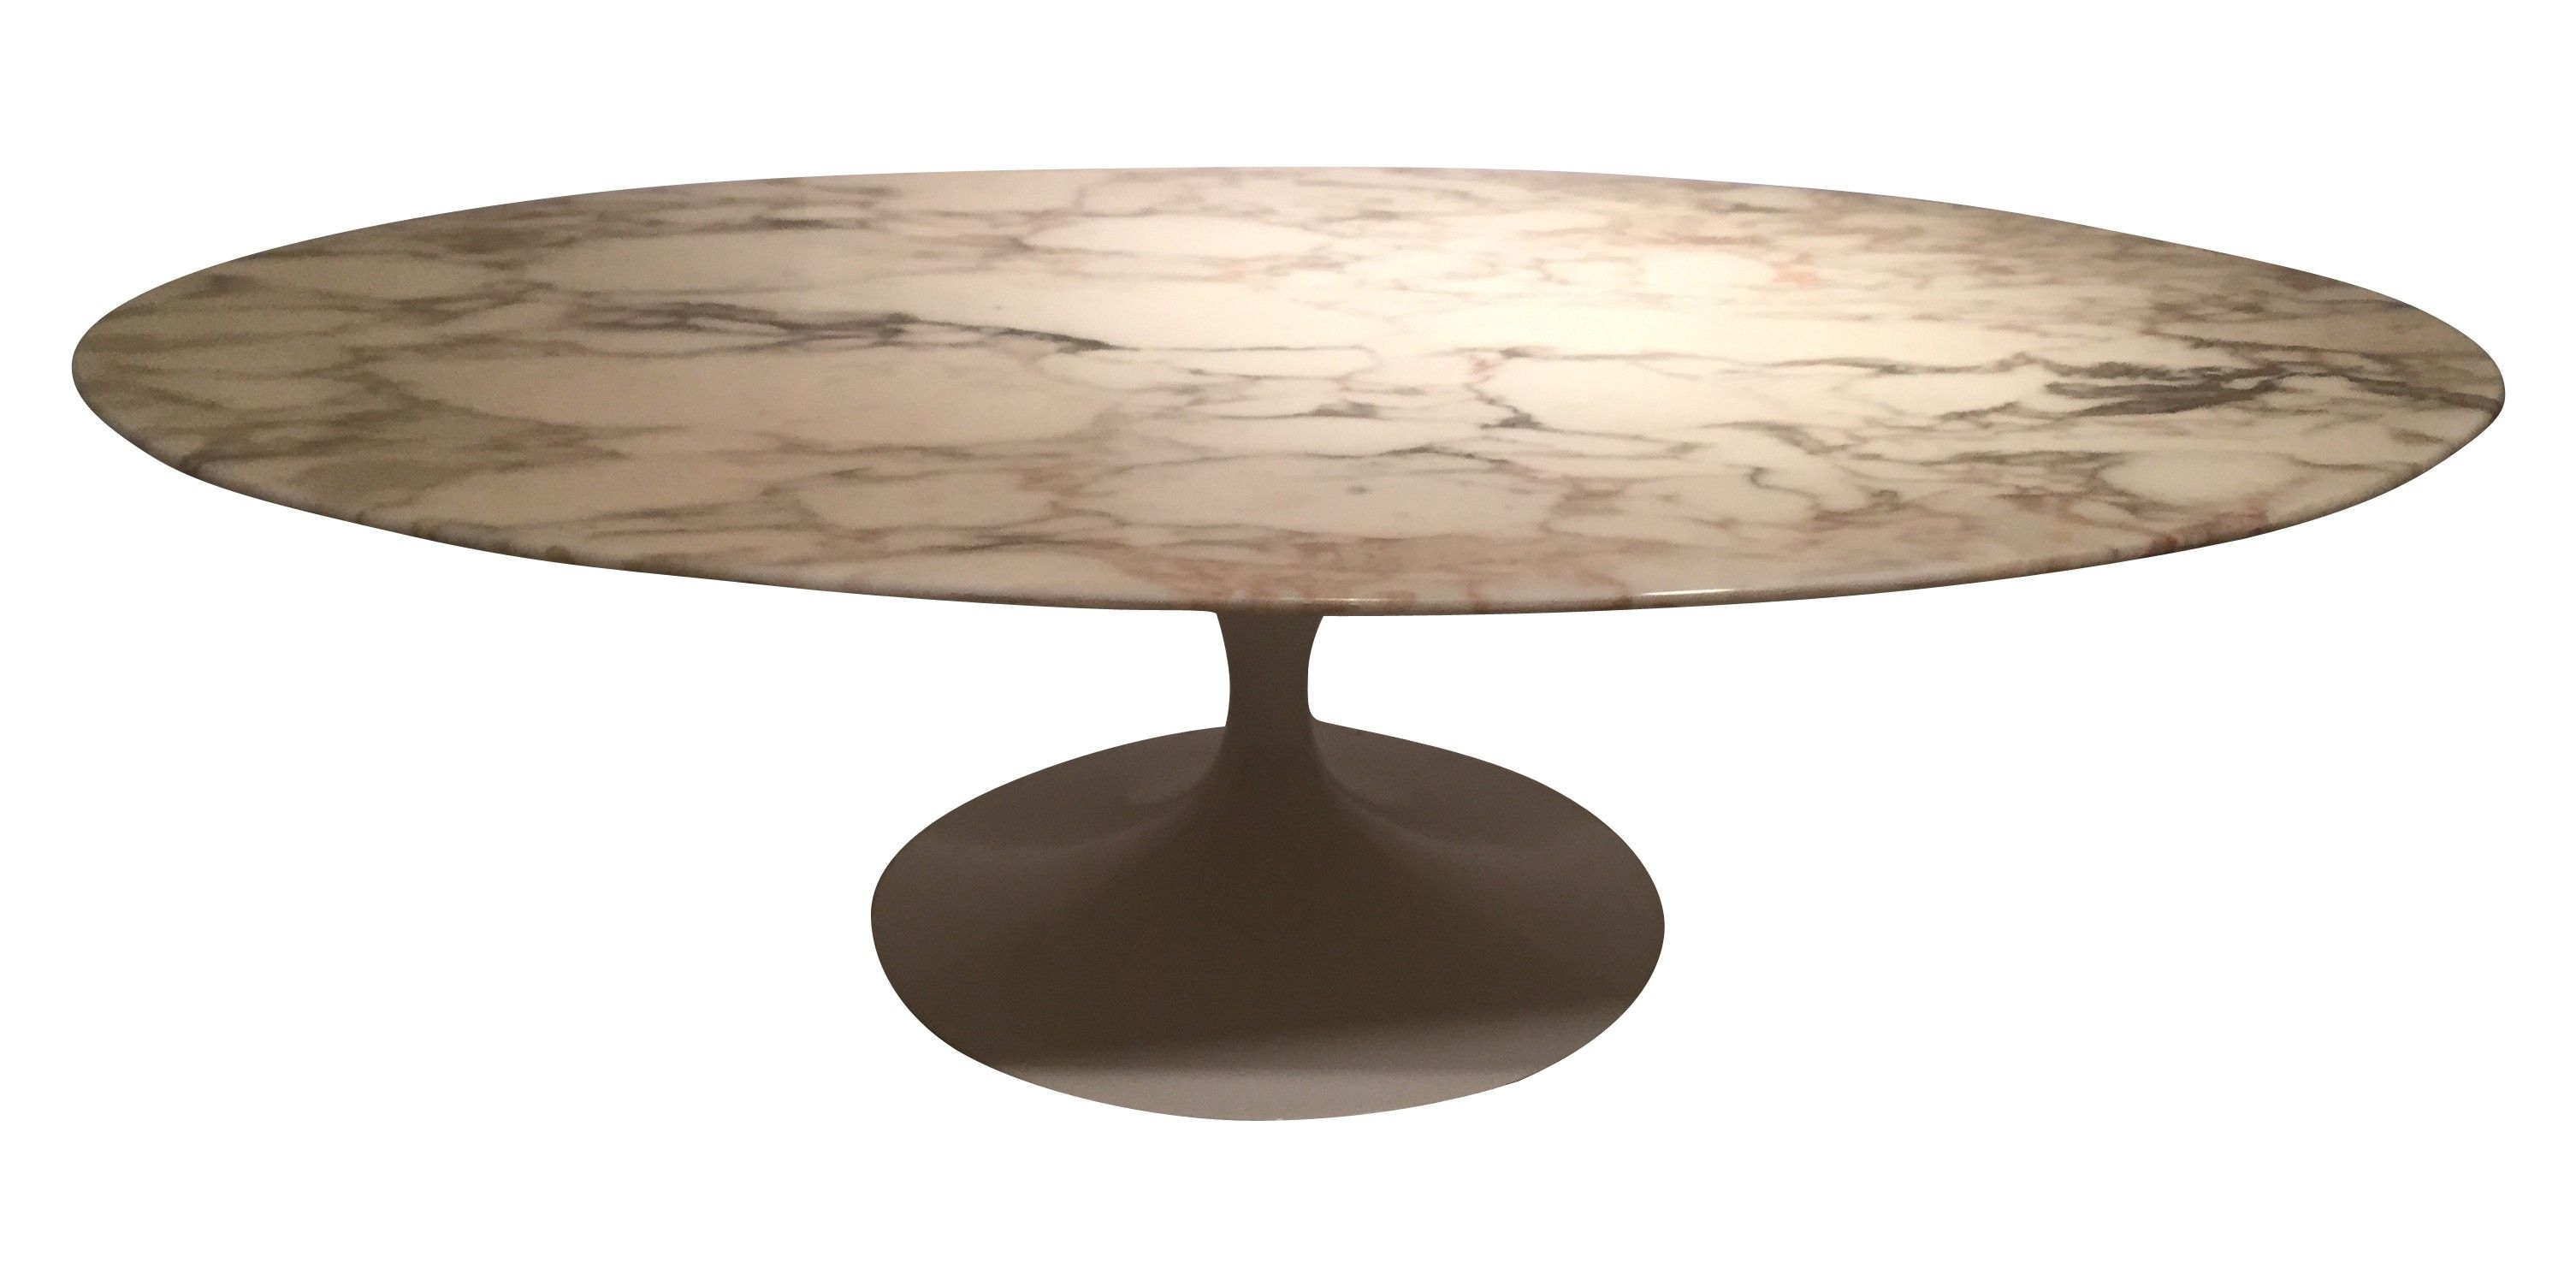 Grande table basse ovale en marbre eero saarinen ann es for Table ovale design